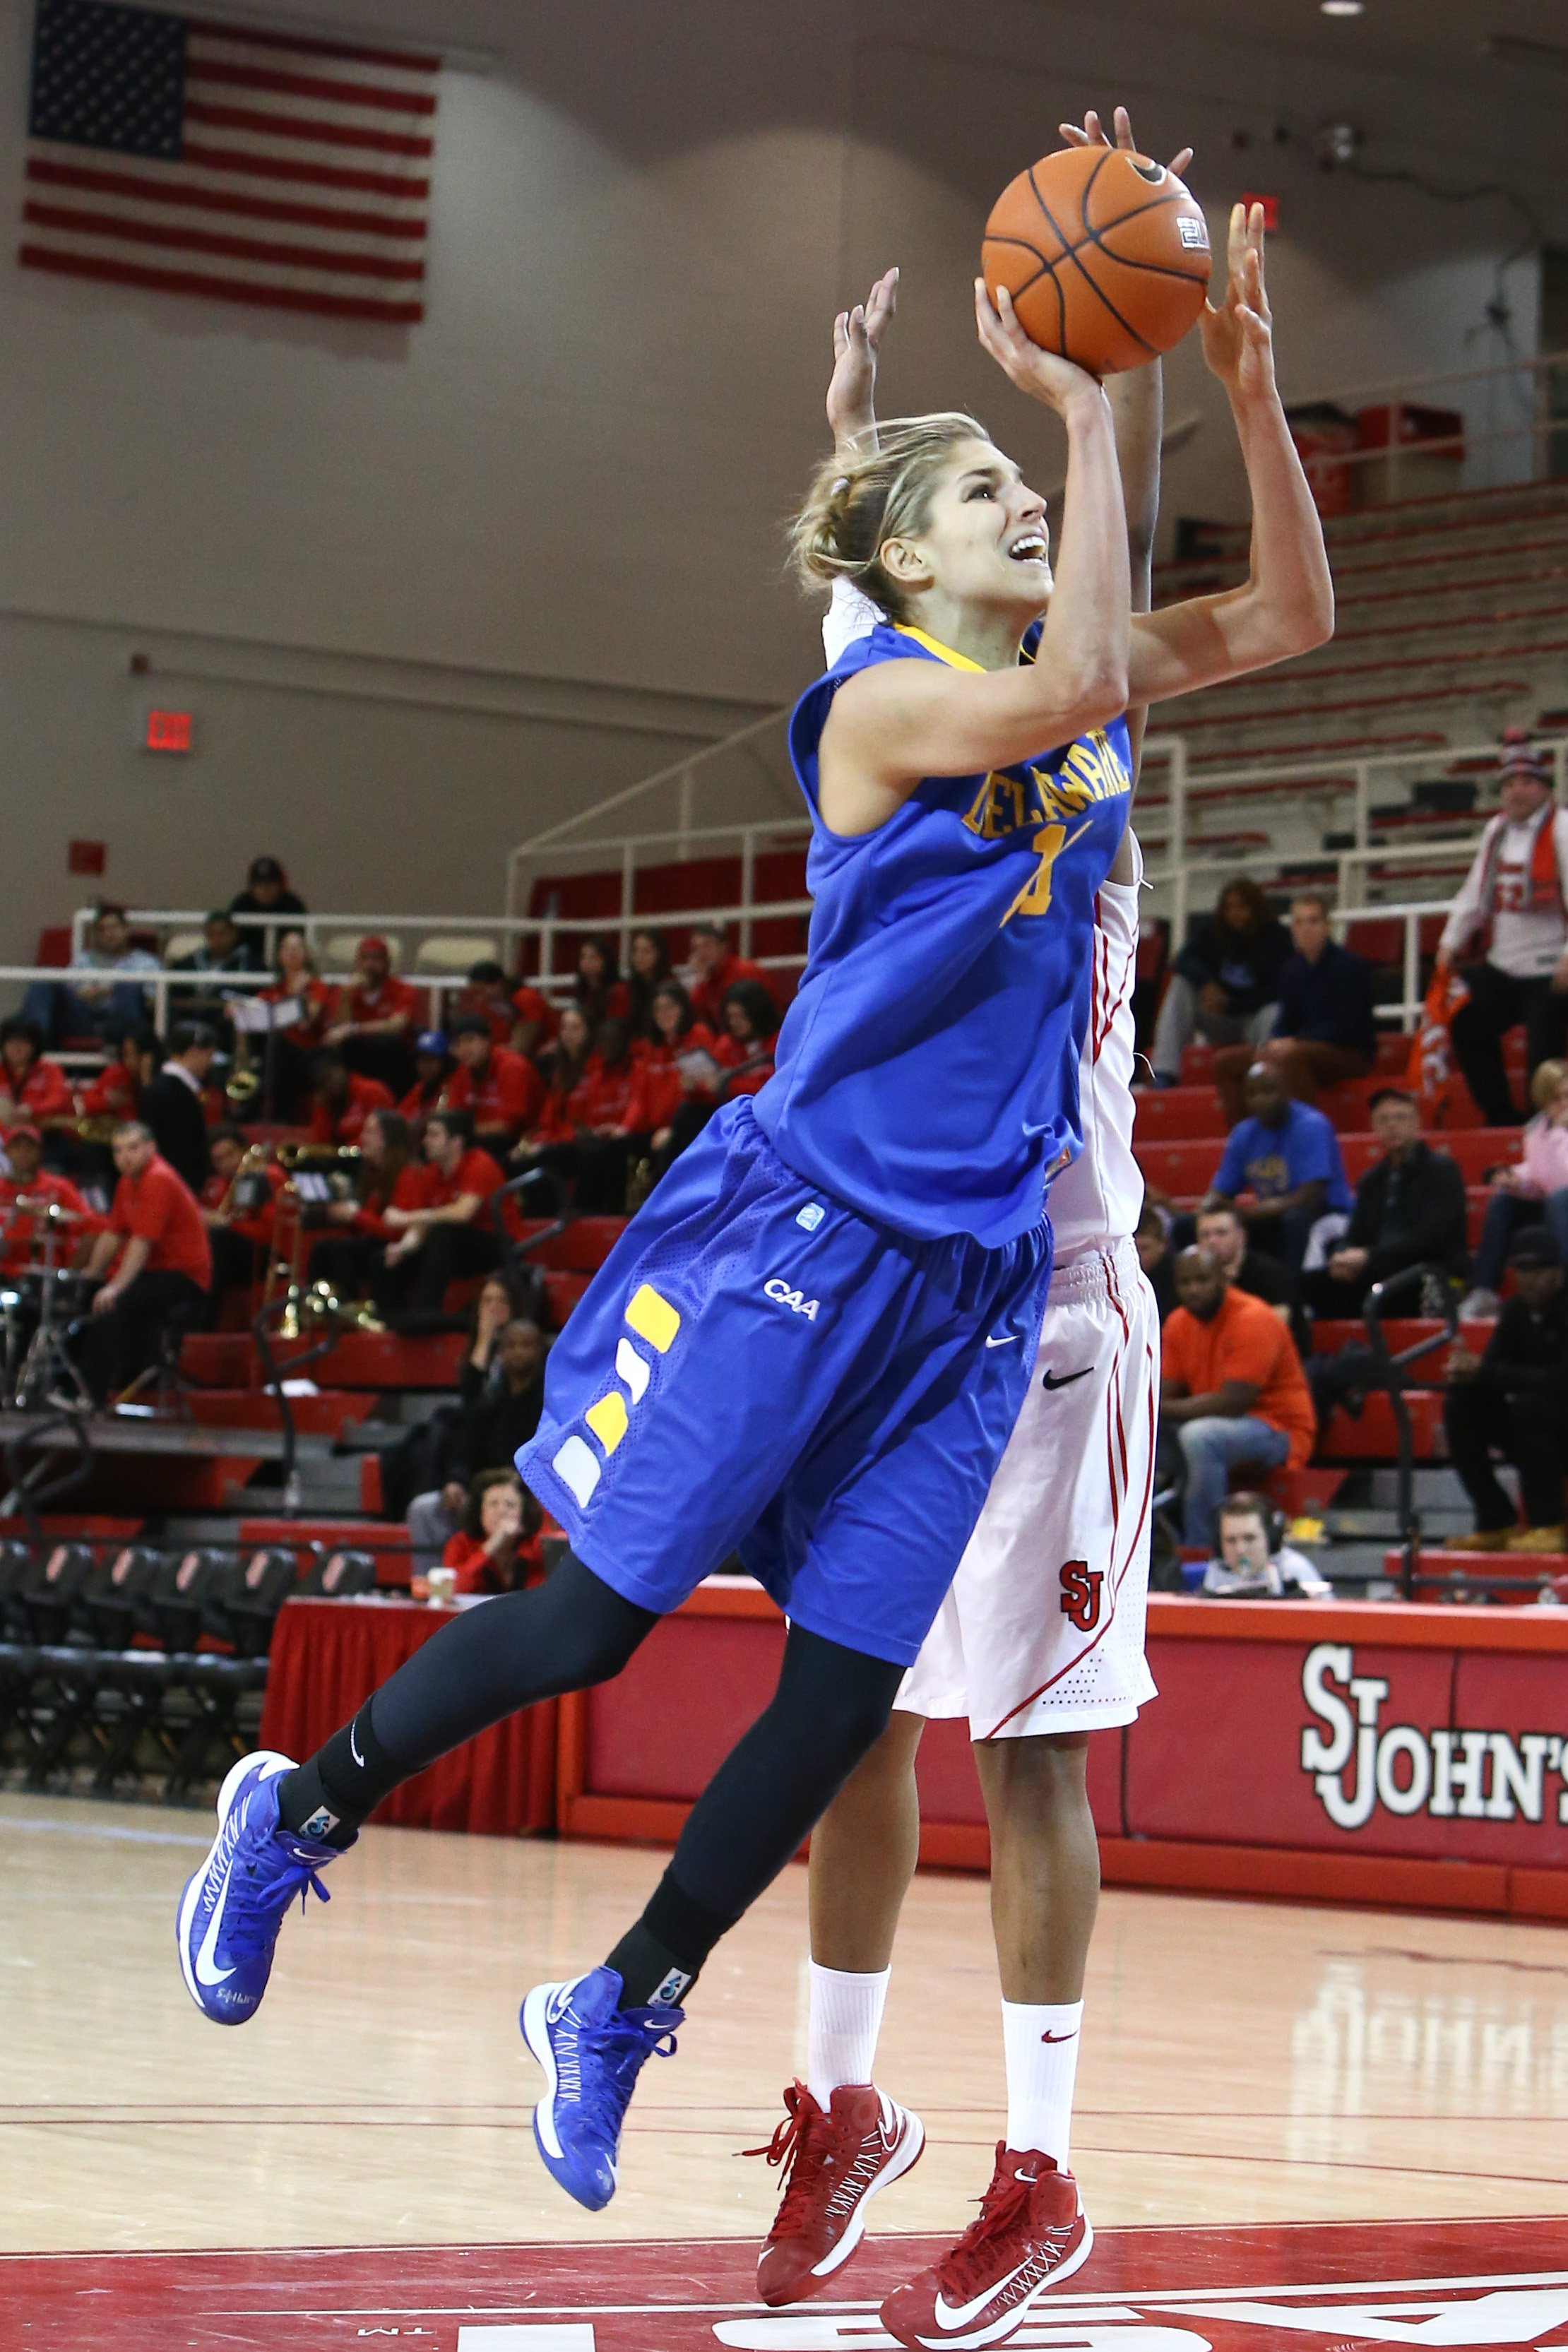 Elena Delle Donne (11) goes up for a shot against the St. John's Red Storm at Carnesecca Arena on January 2, 2013 in Jamaica, Queens, New York | Photo: Shutterstock